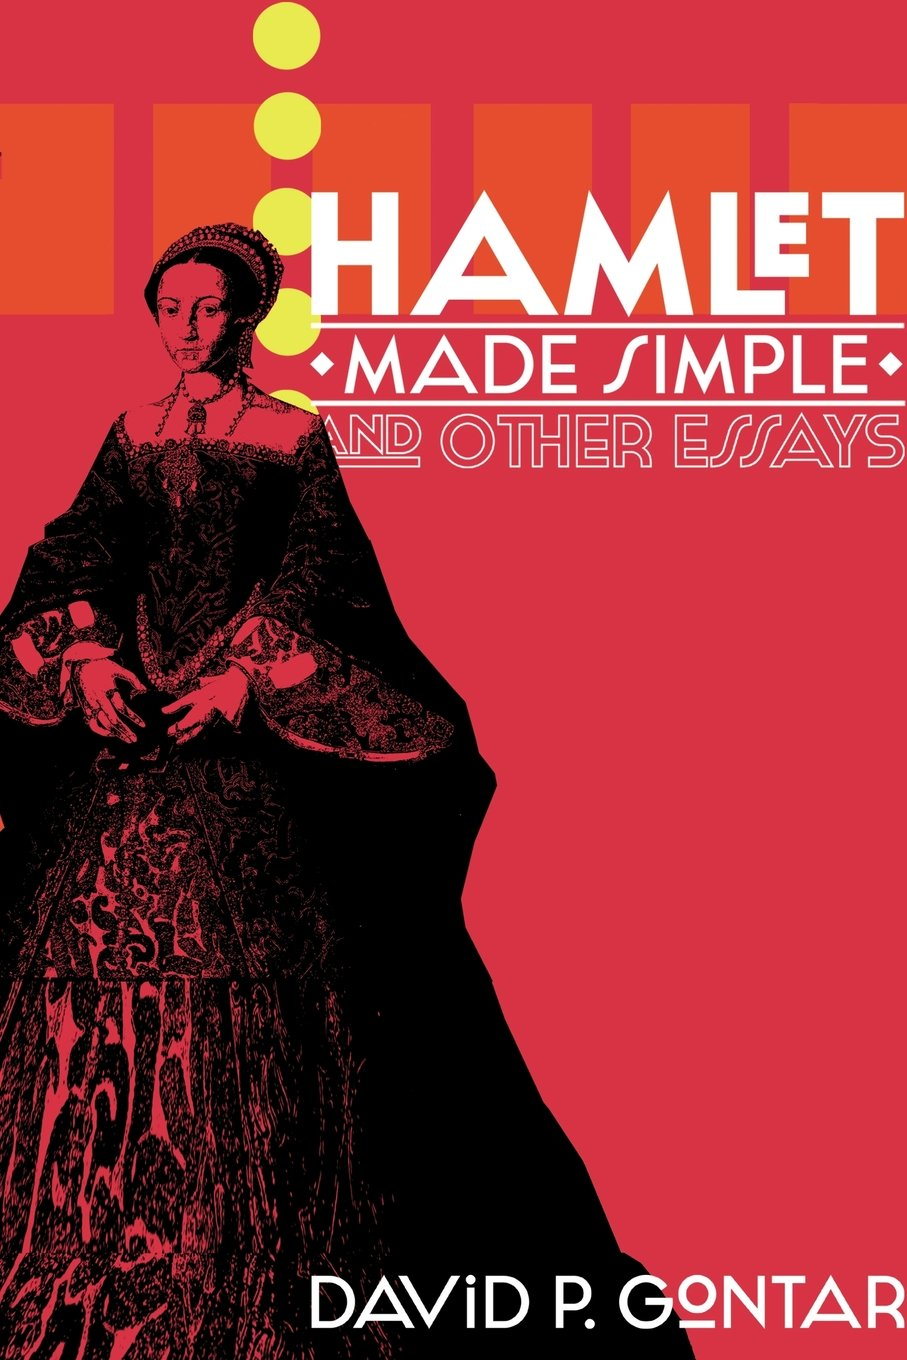 psychoanalytic essays on hamlet Hamlet, prince of denmark, needs to avenge his father's murder this is  this  essay takes the view that shakespeare linked the principal events in hamlet to   and the stakes of 'reading psychoanalysis into' kenneth branagh's hamlet.